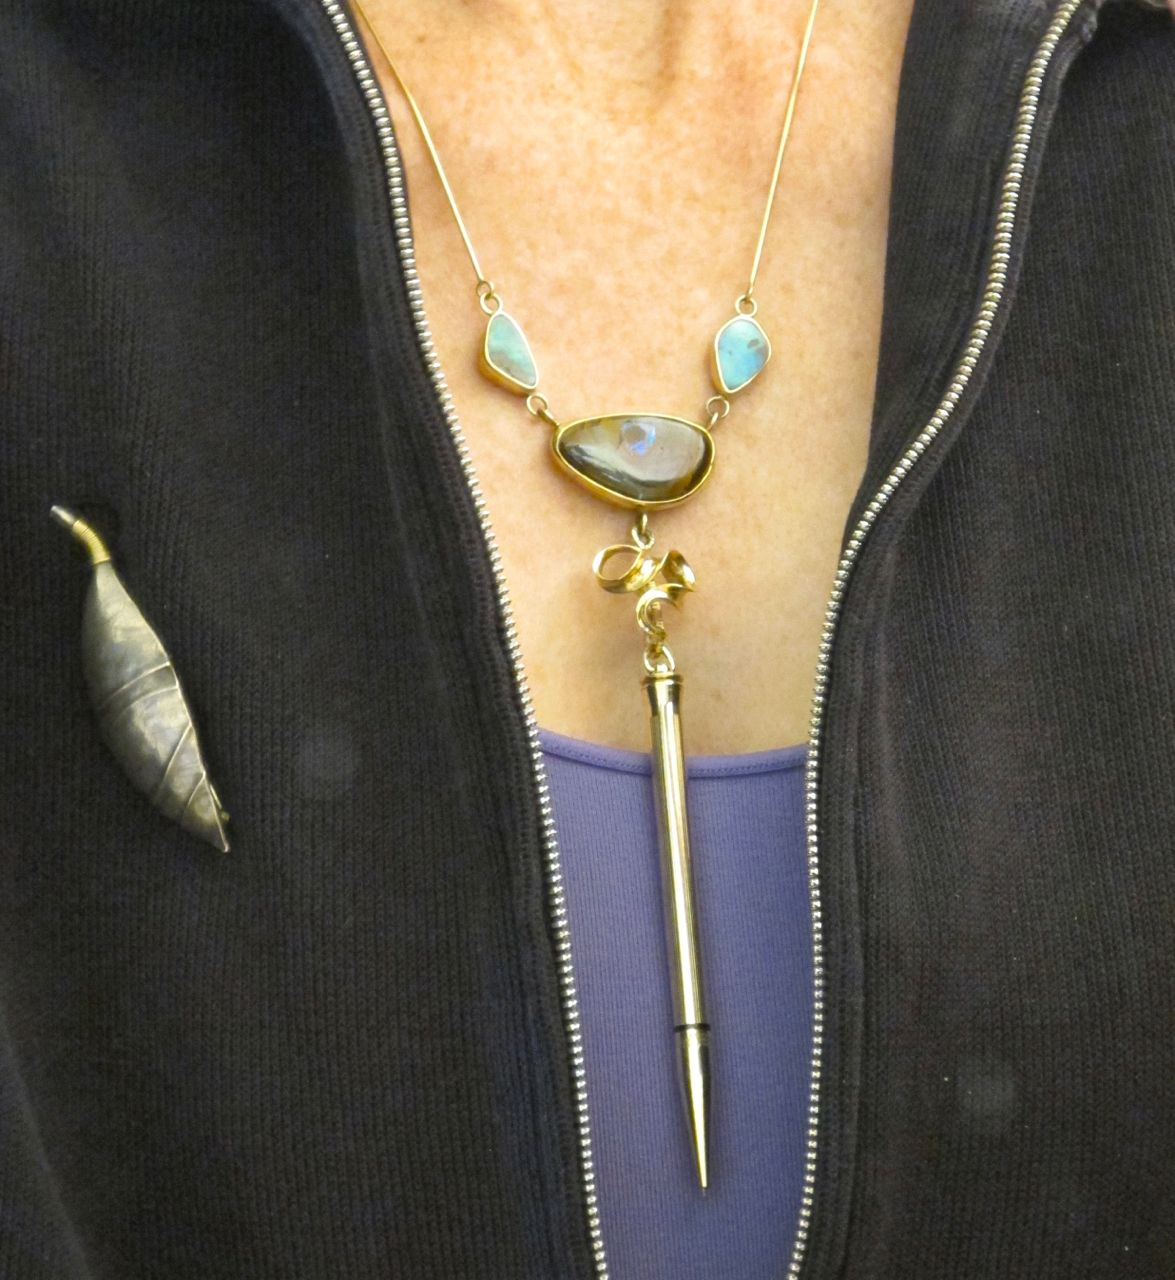 Necklace by Toni Tischer and Jerry Scavezze, opals from Susan Bethany; pin by Harold O'Connor